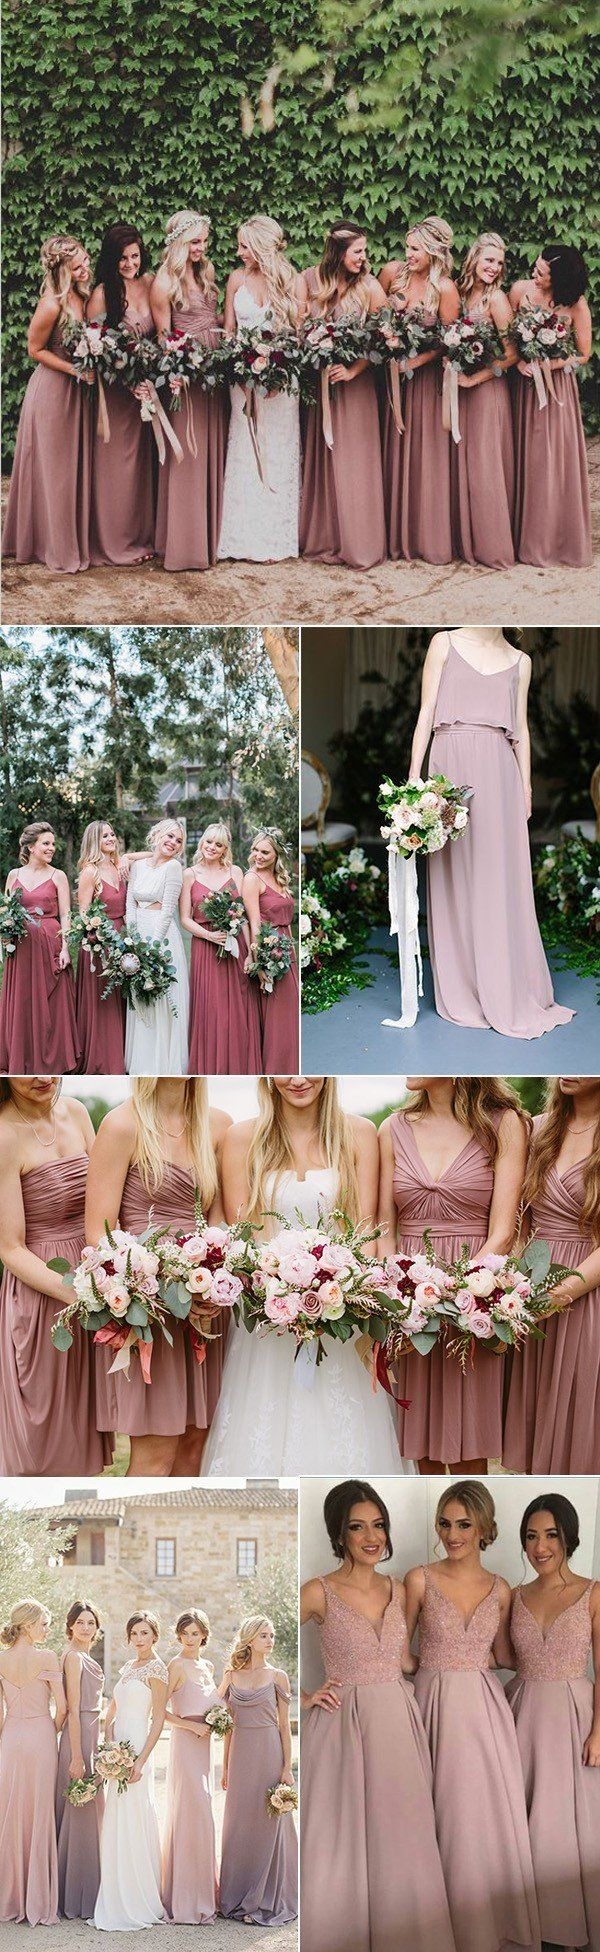 Dusty rose wedding dress  Trending Dusty Rose Wedding Color Ideas for   Save The Date